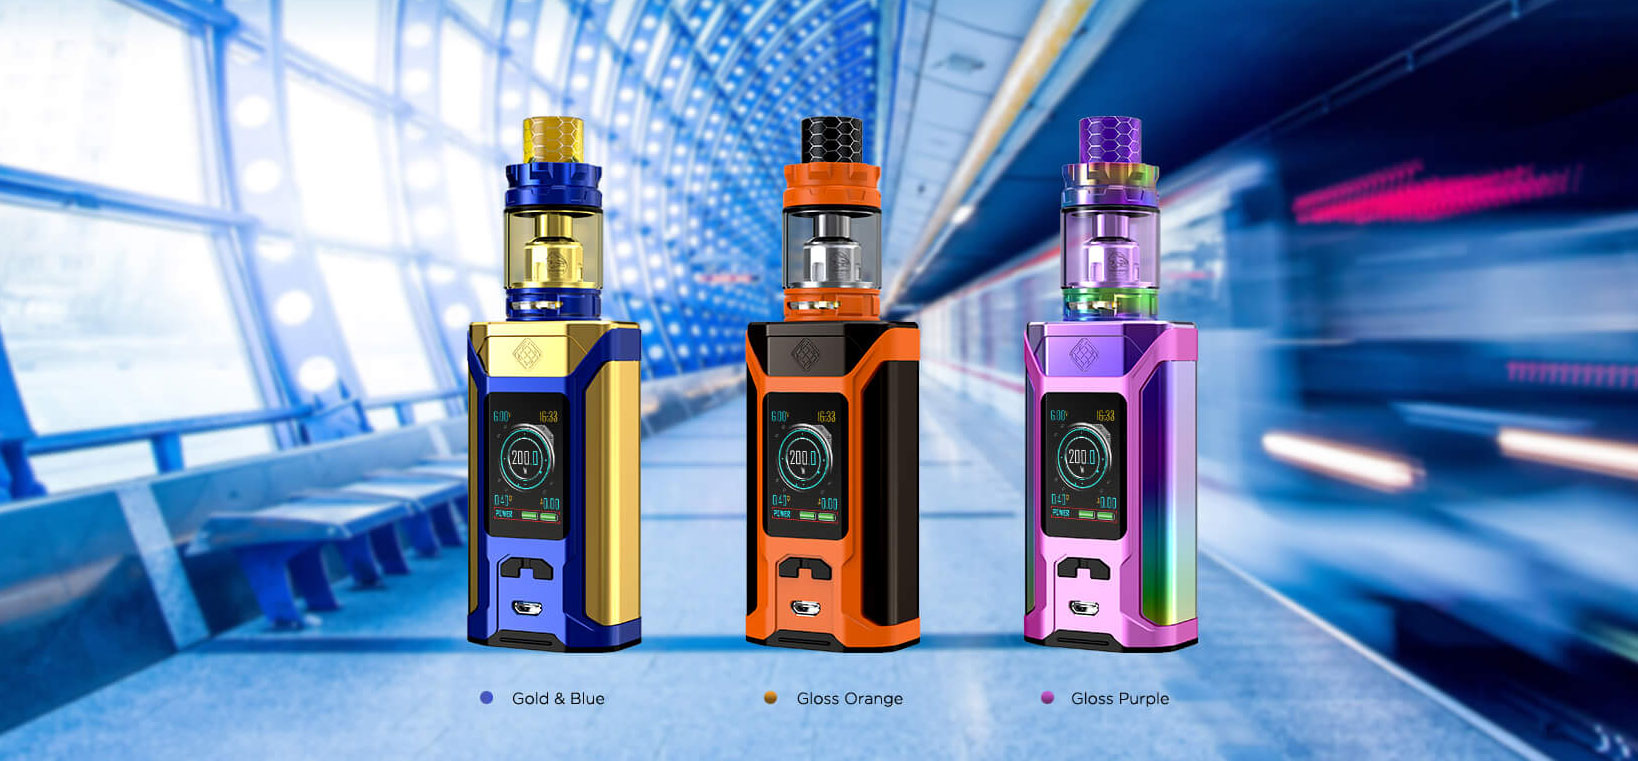 Wimsec SINUOUS RAVAGE230 Mod with GNOME King Vape Starter Kit